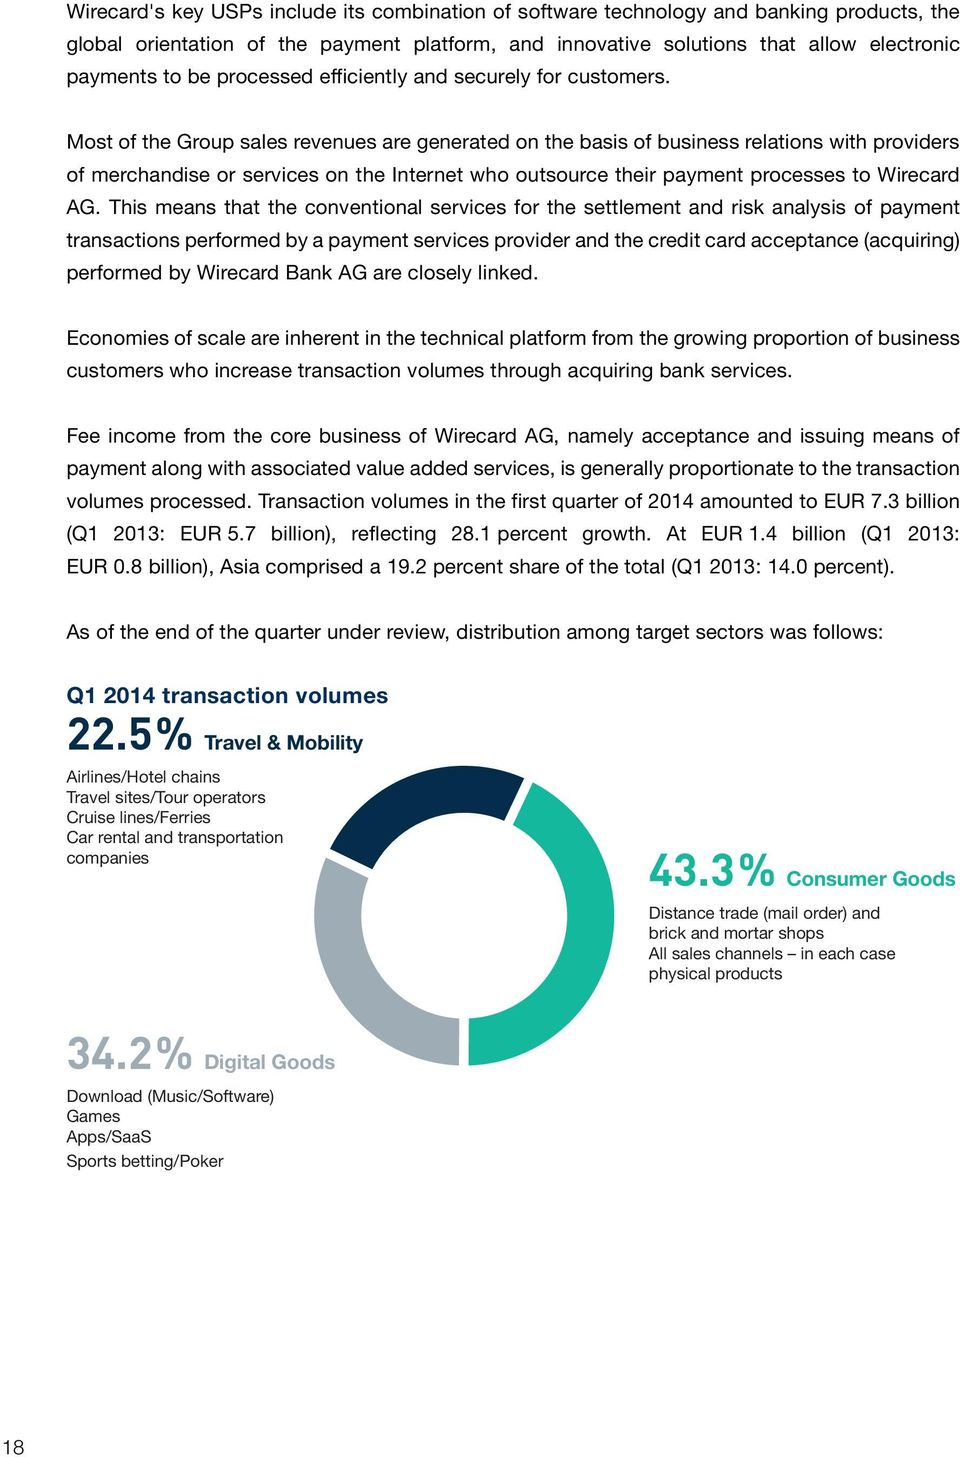 Most of the Group sales revenues are generated on the basis of business relations with providers of merchandise or services on the Internet who outsource their payment processes to Wirecard AG.